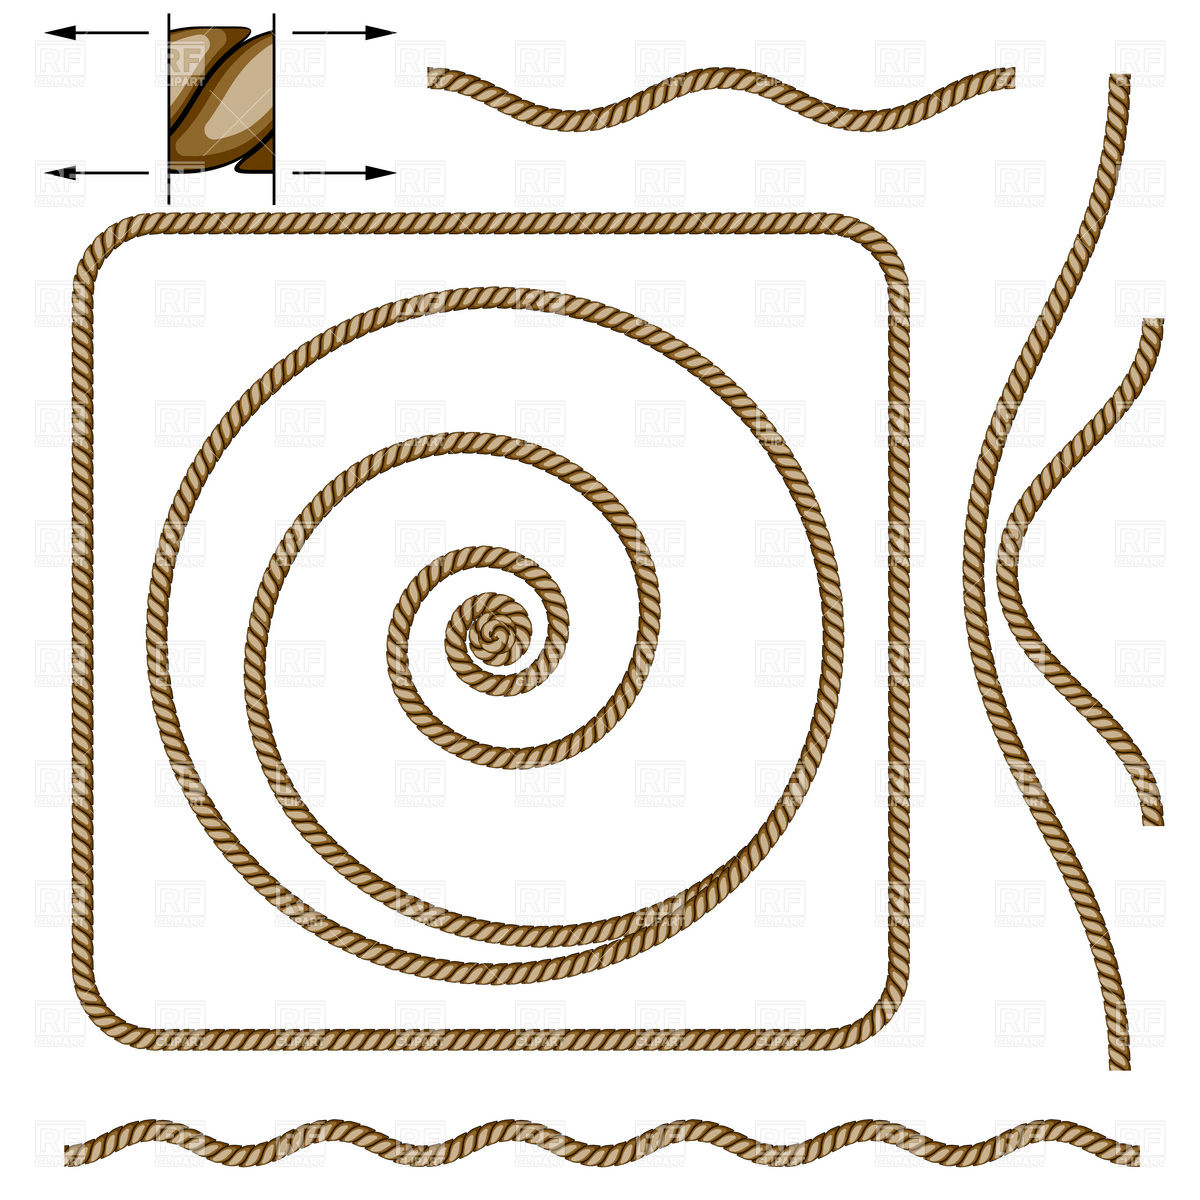 Rope frames and wavy borders Vector Image #8258.